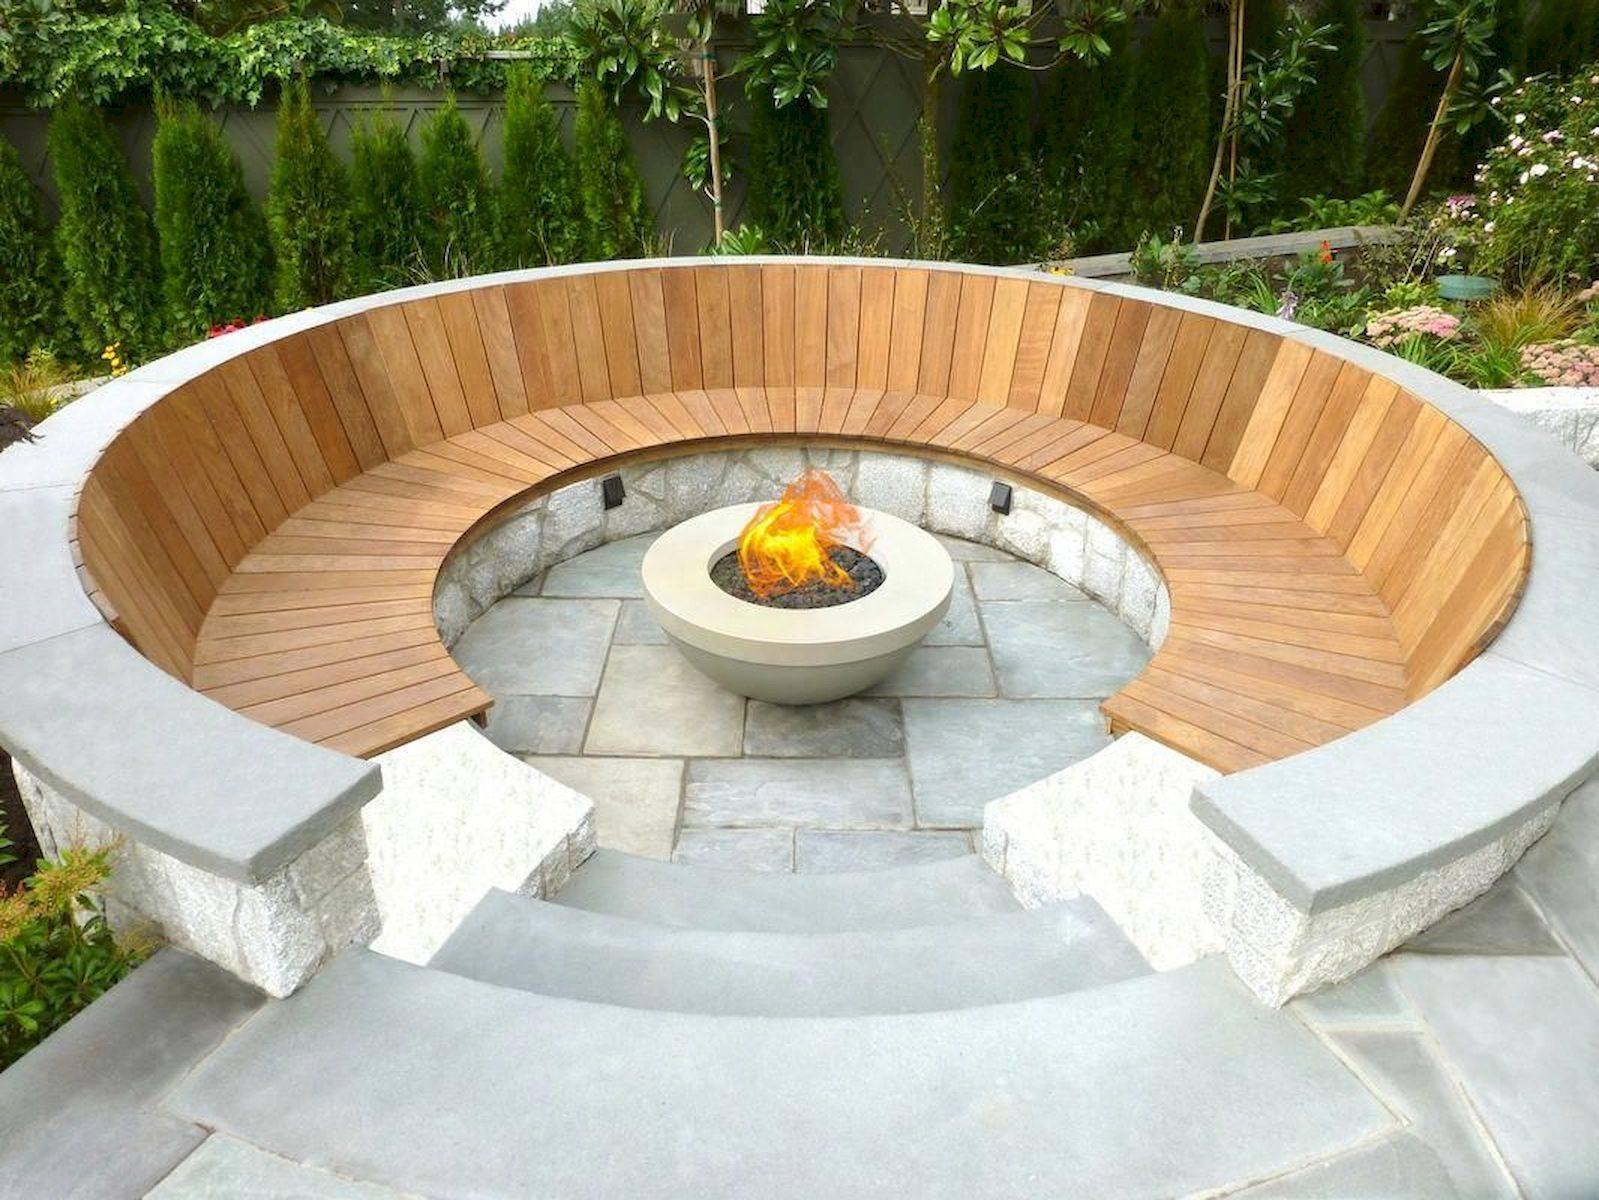 35 Great Fire Pit Designs For Your Gardens And Patios Outdoor